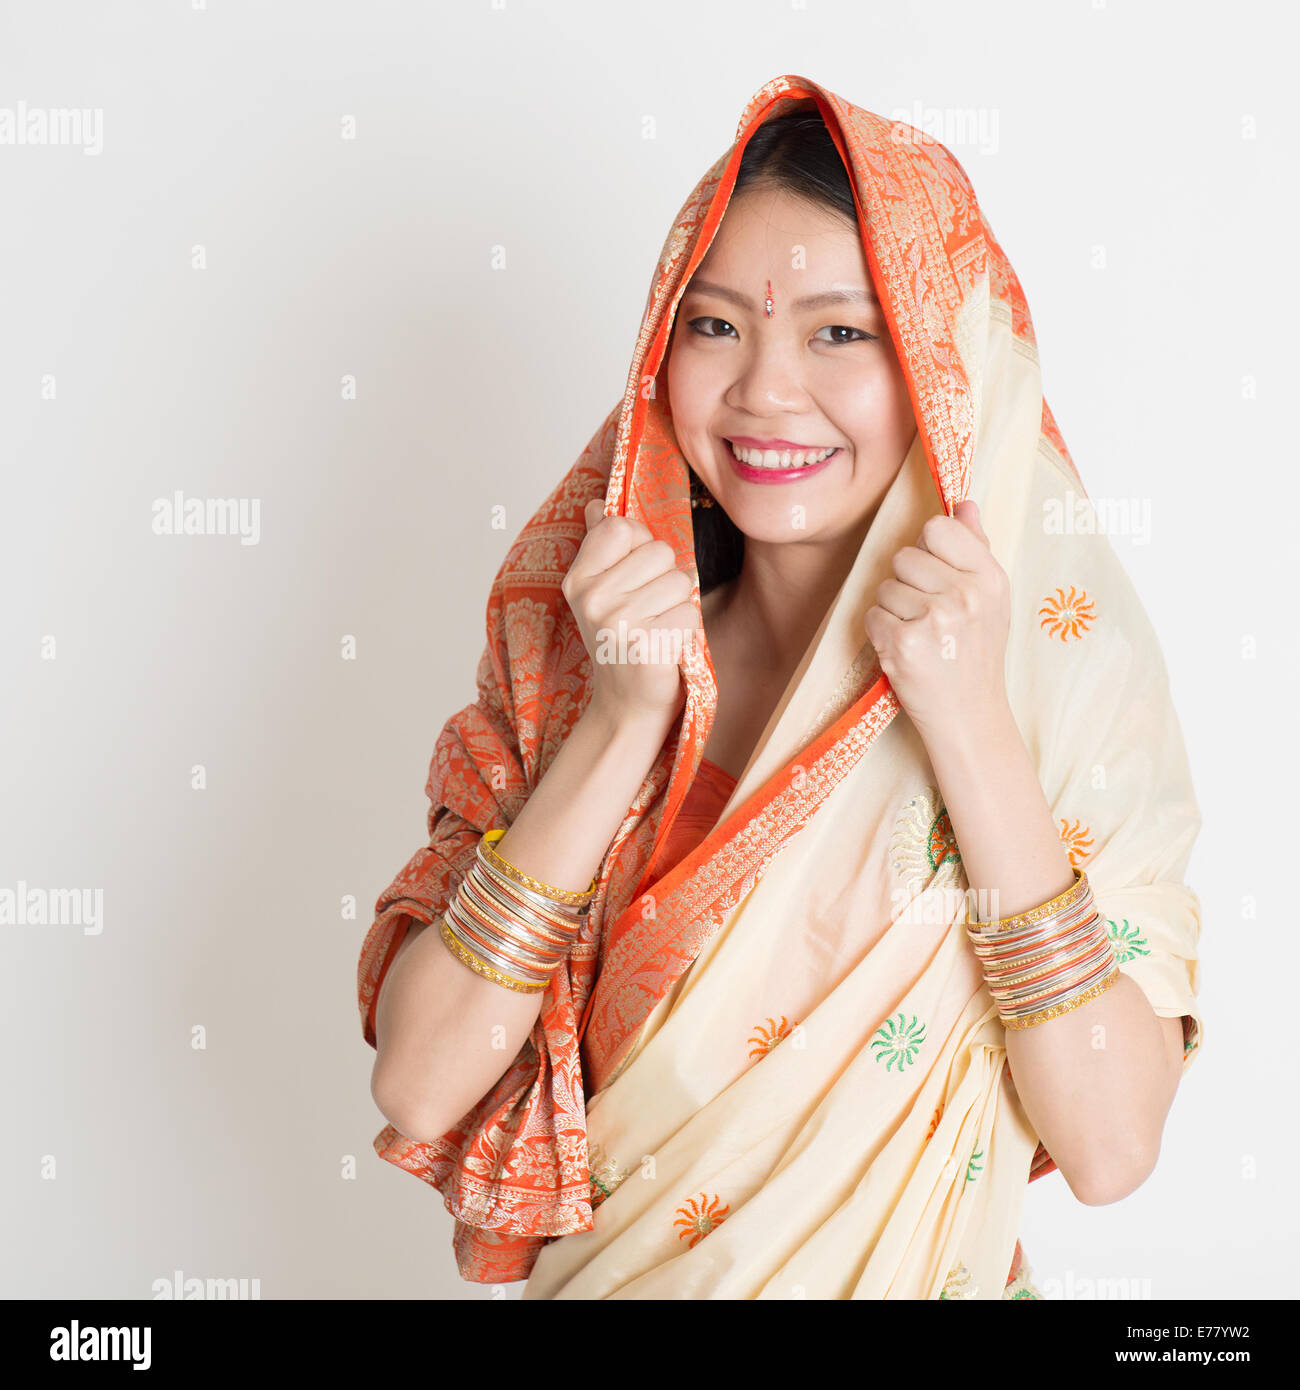 Portrait of Indian Muslim girl in sari covered her head, smiling confidently on grey background. - Stock Image